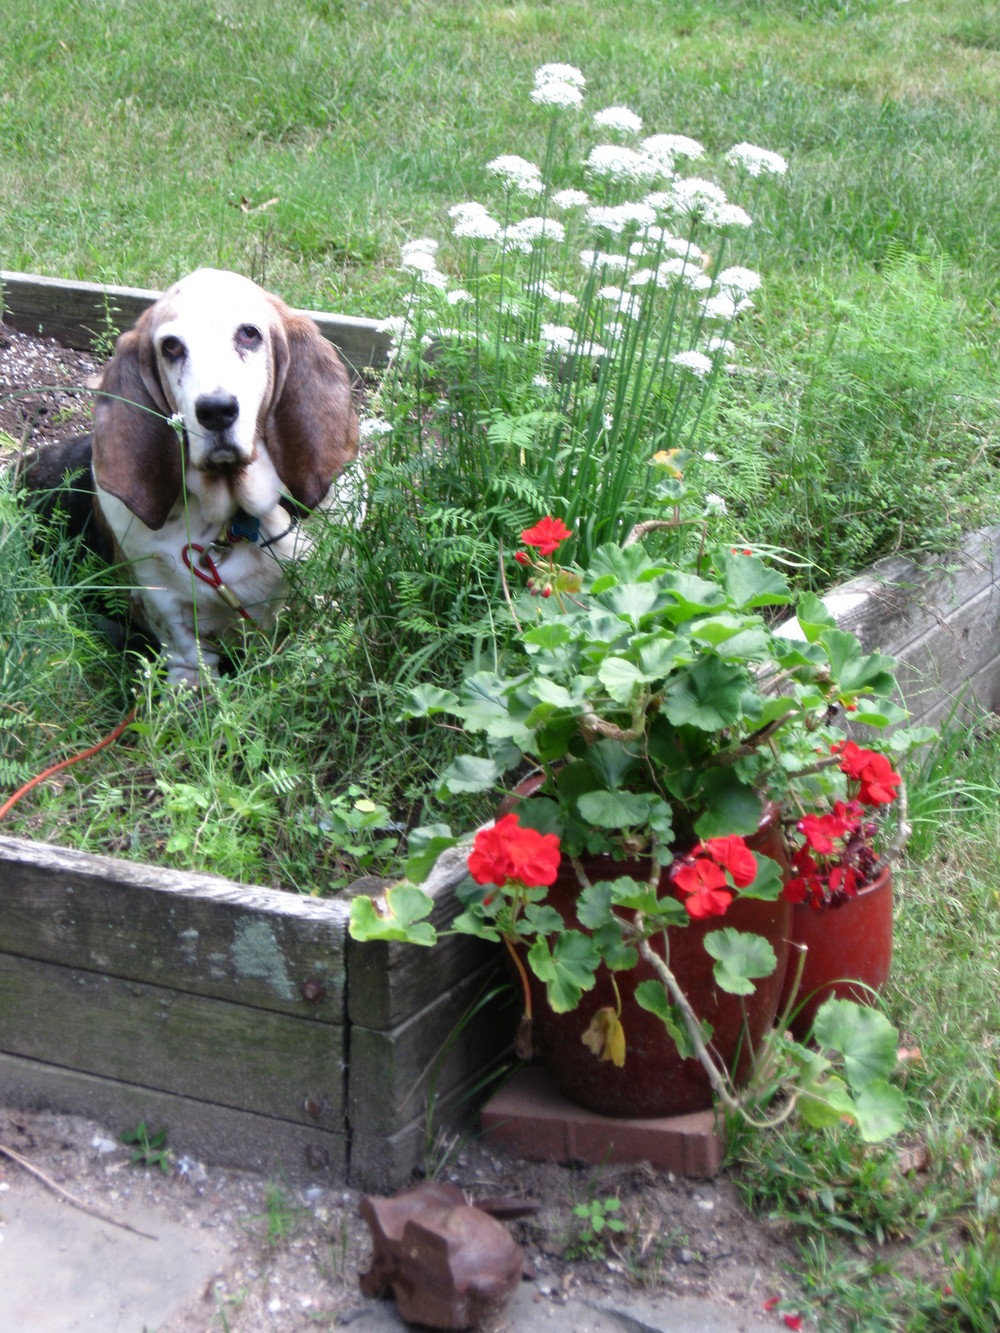 Lily the Wonder Basset invading the herb garden.